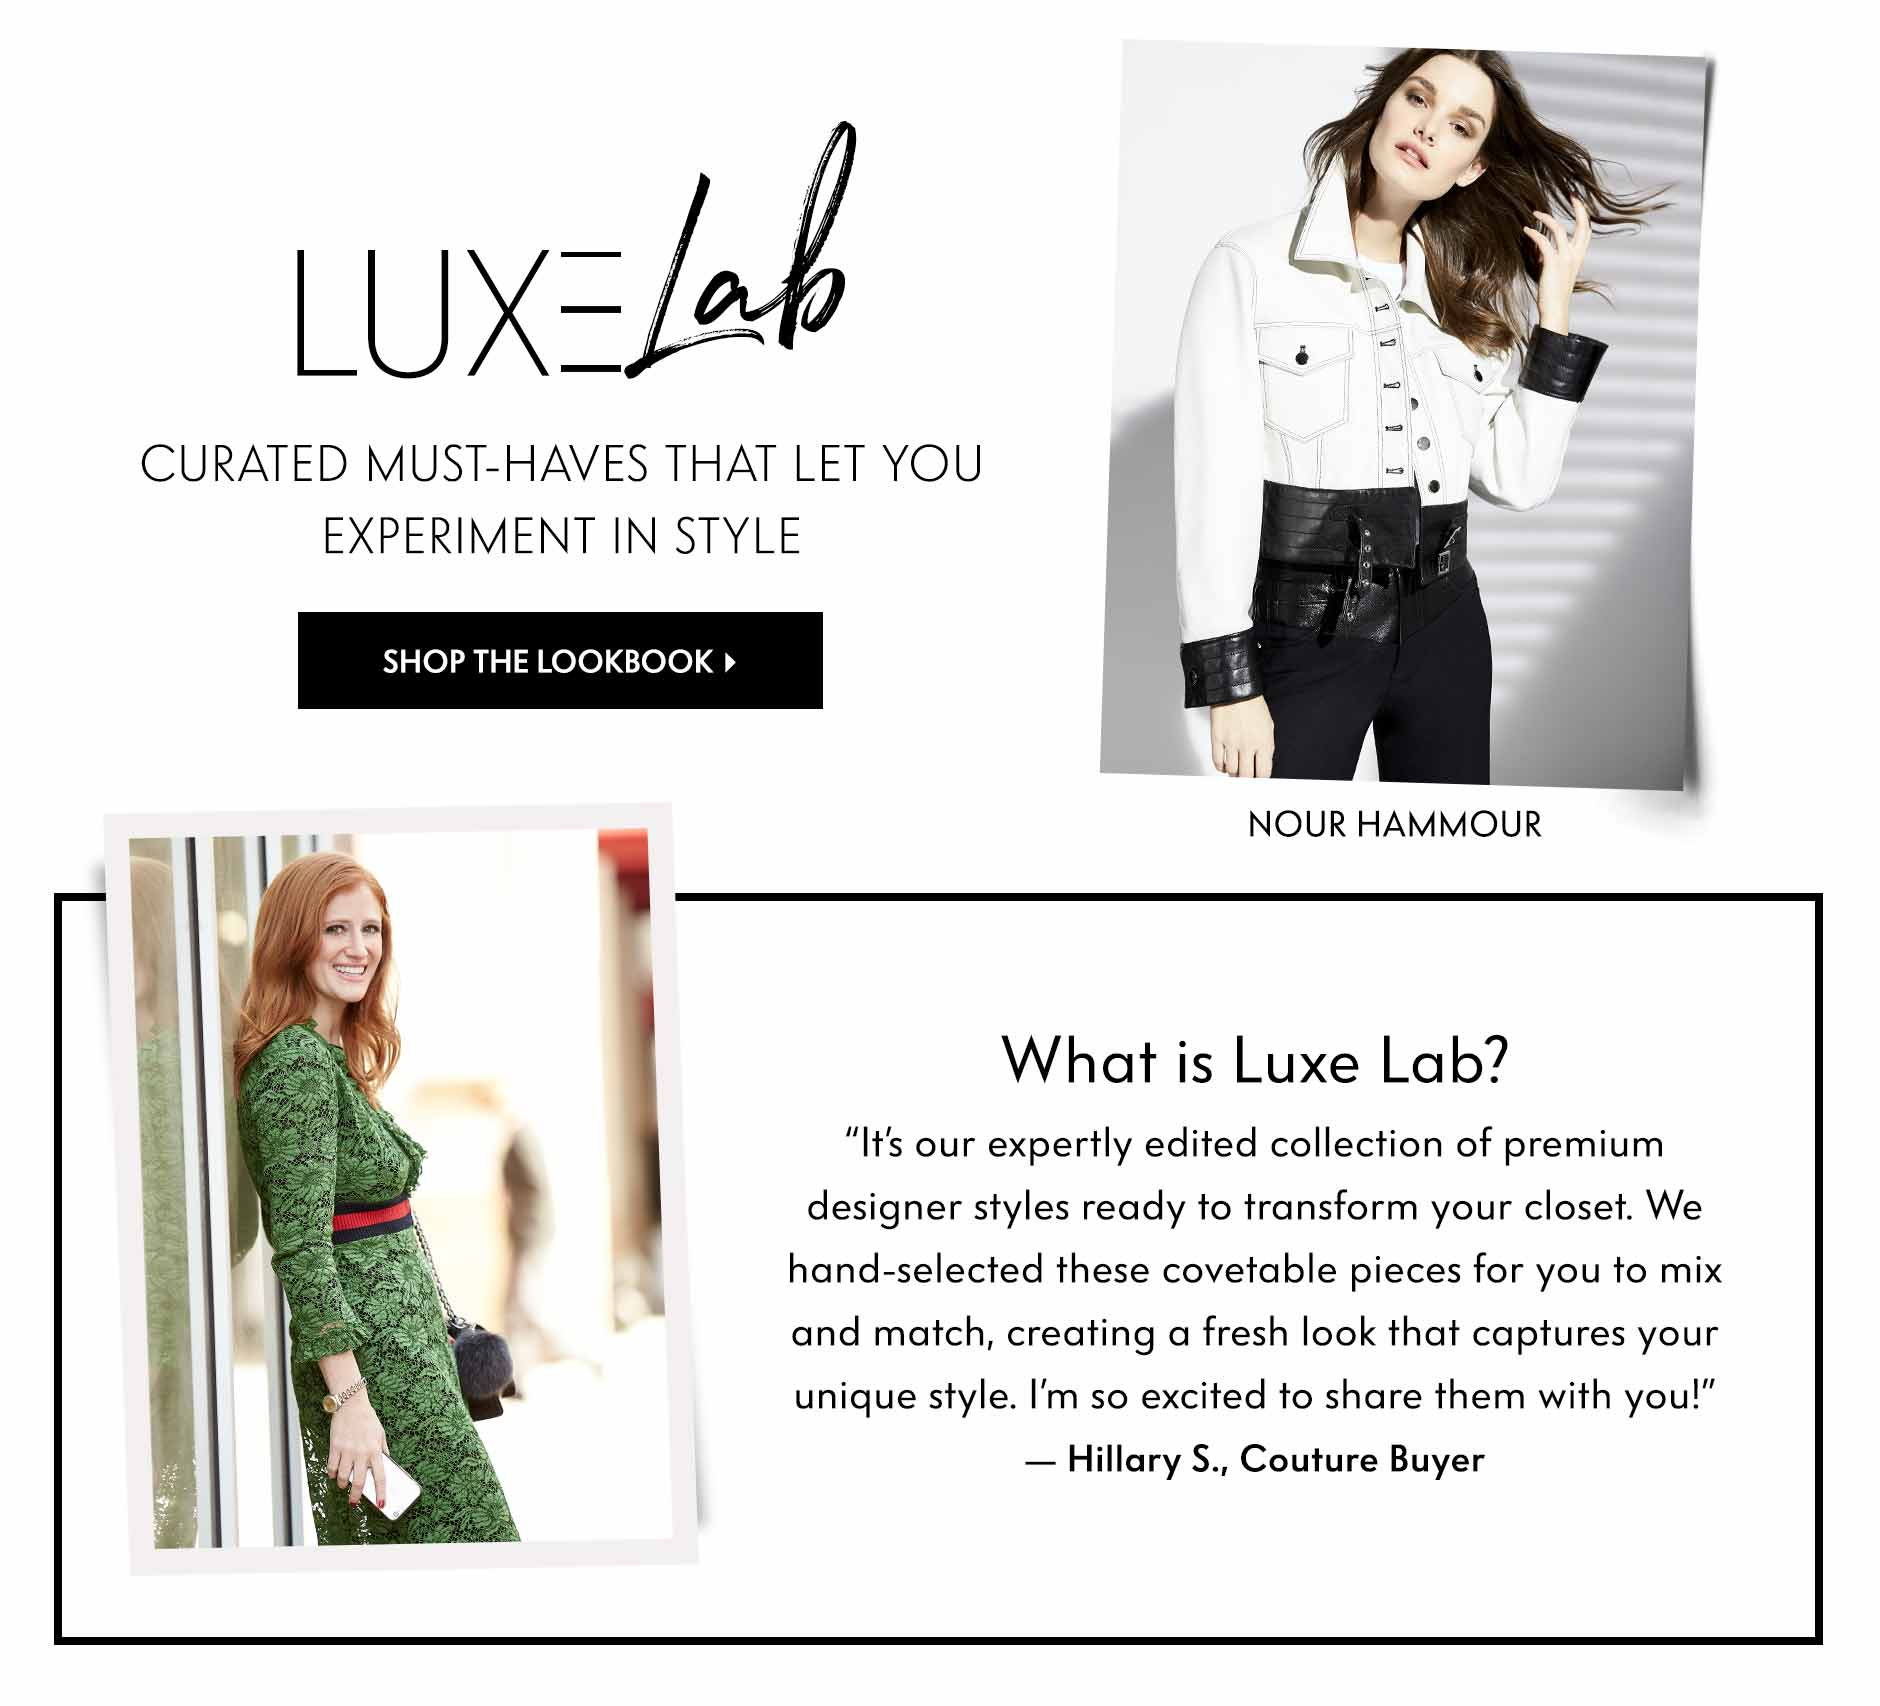 Luxe Lab - Curated, must-haves that let you experiment in style